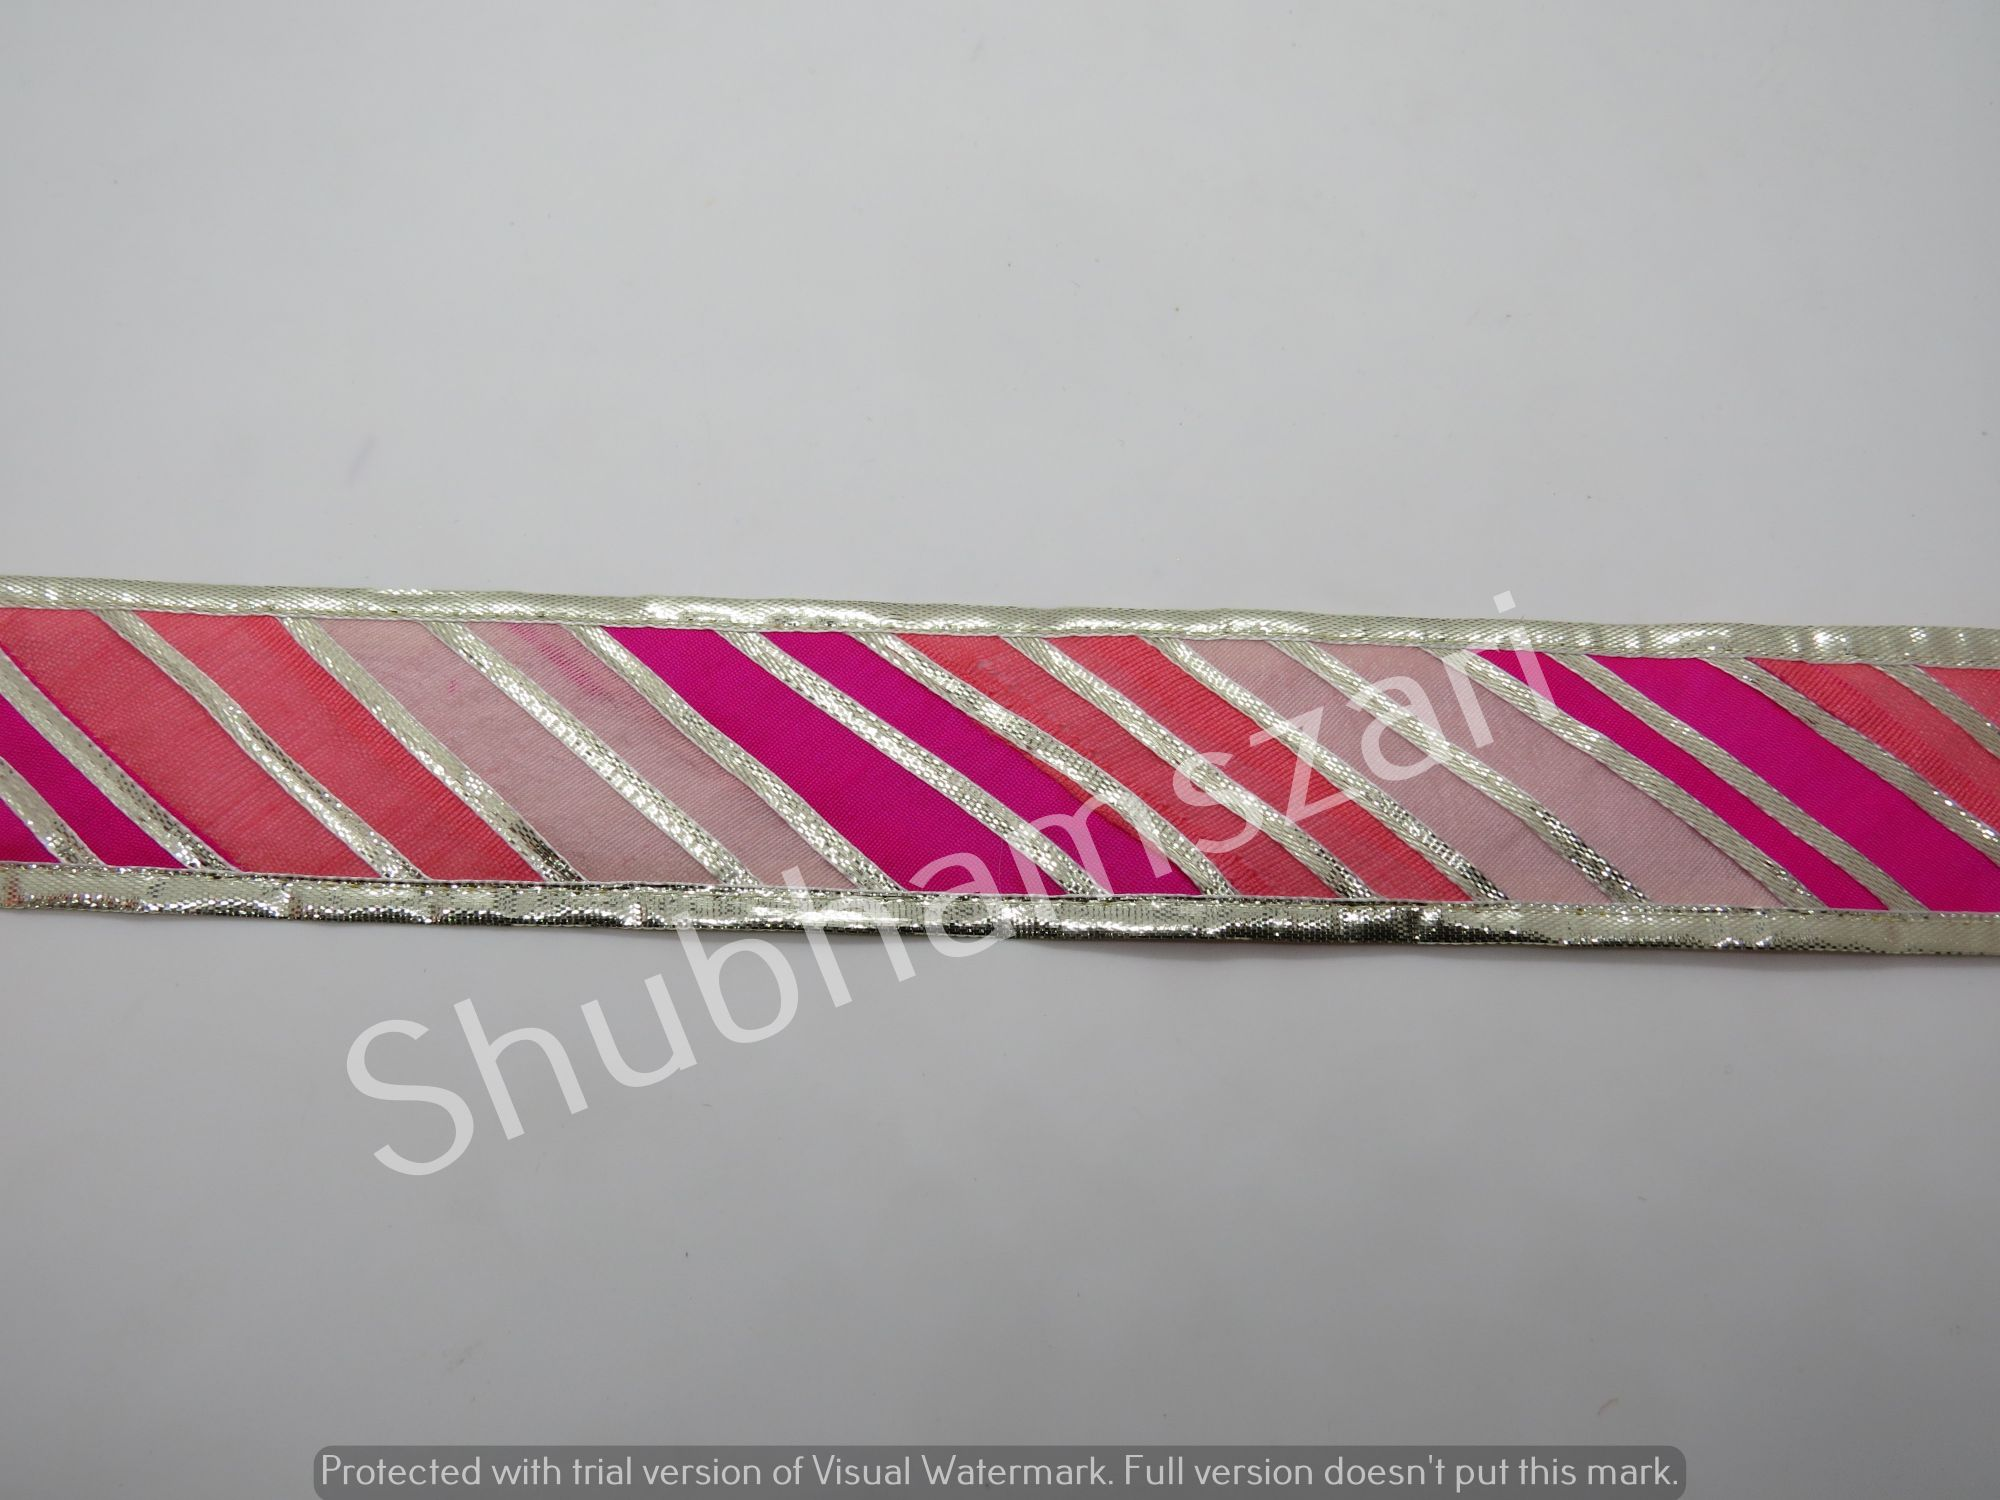 wholesale 9 Mtr mutli color handmade embellish dupatta lace|| crafting ribbon tape || curtain fabric trim || edging trim for cushion covers